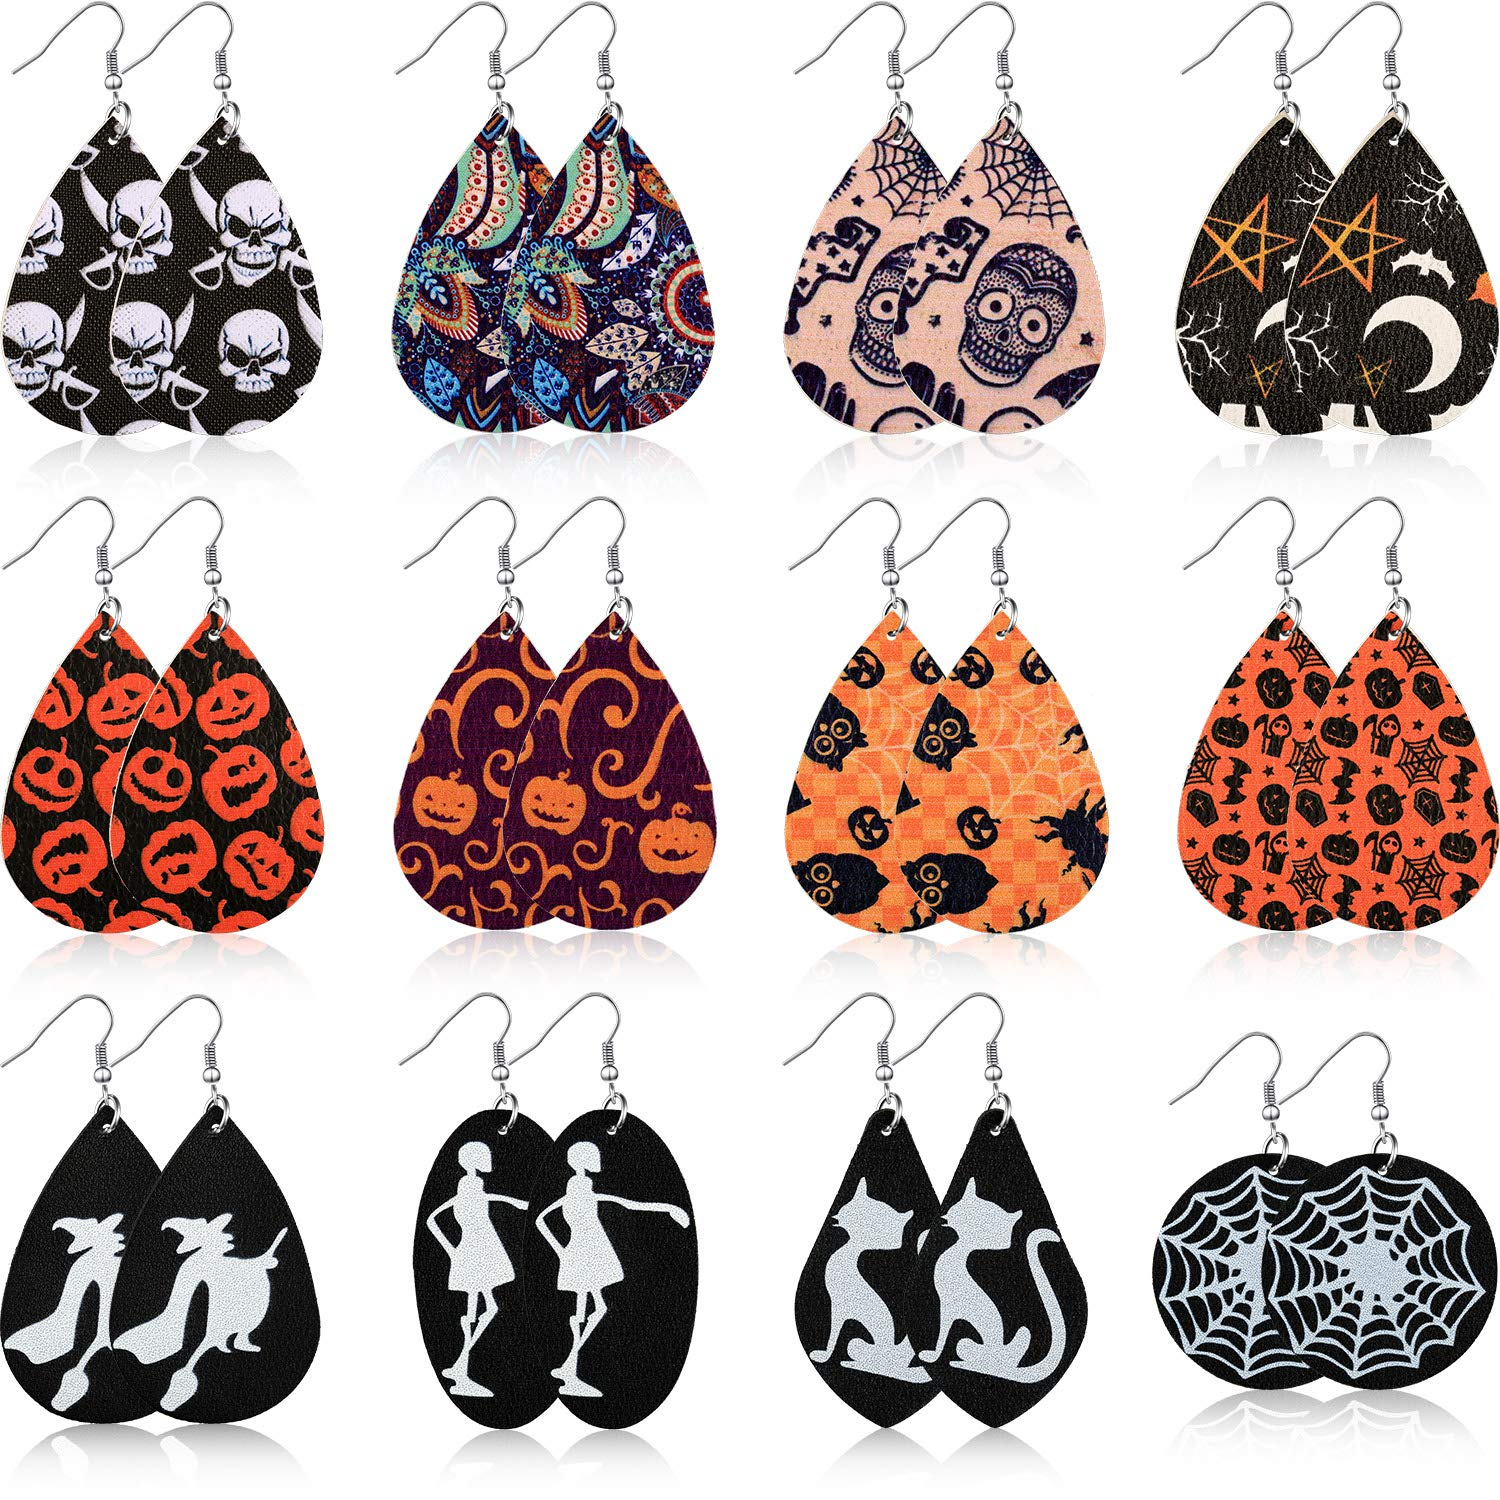 12 Pairs Halloween Earrings Teardrop Earrings Faux Leather Dangle Earrings for Halloween Costume Party Decoration Supplies by Hicarer